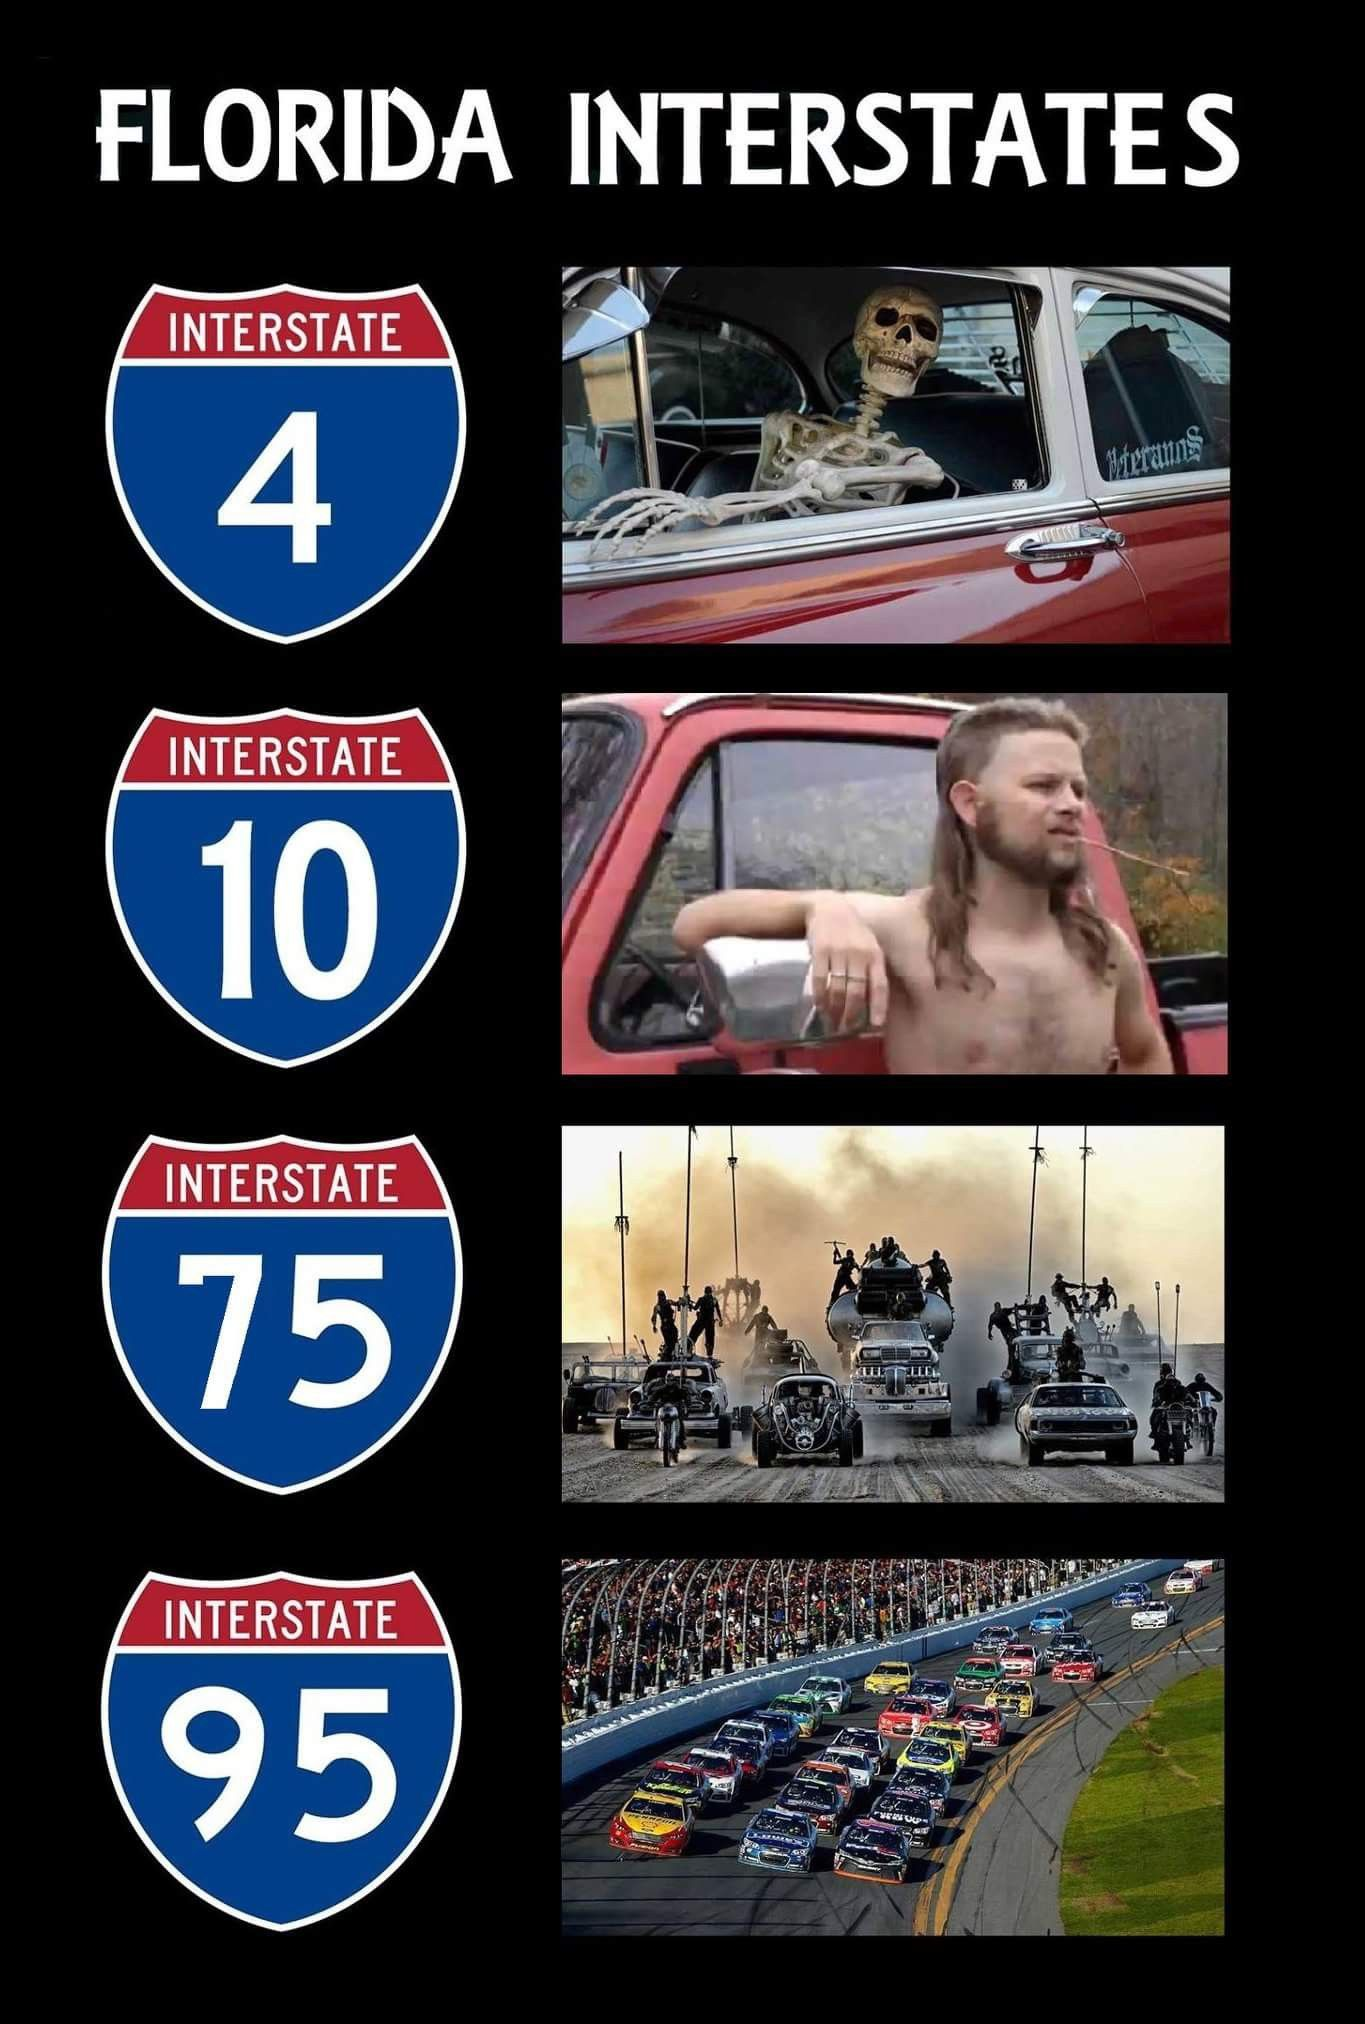 Pin By My Info On Florida Funnies Florida Funny Florida Meme